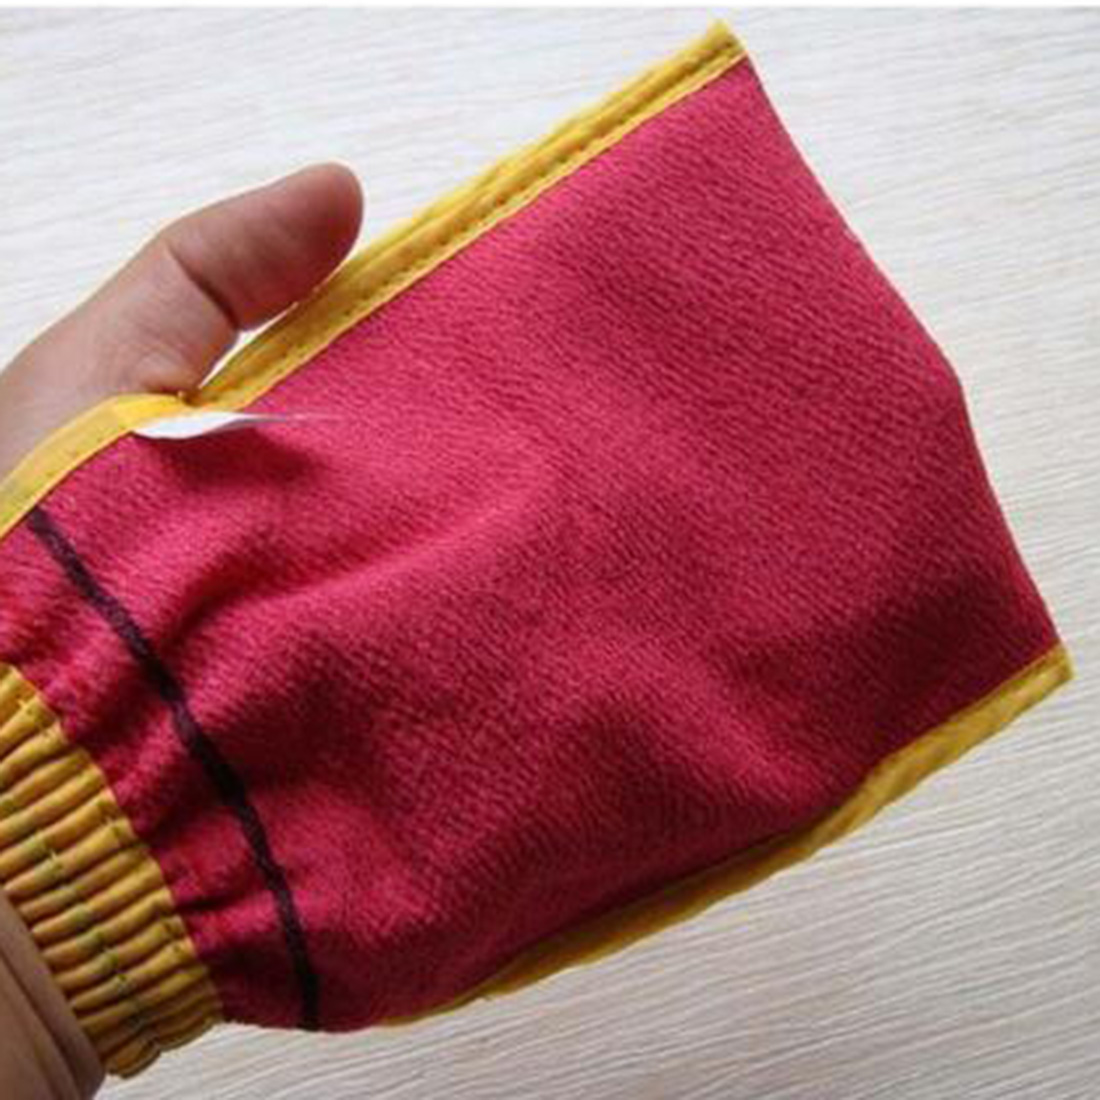 Random Color Shower Spa Exfoliator Two-sided Bath Glove Body Cleaning Scrub Mitt Rub Dead Skin Removal